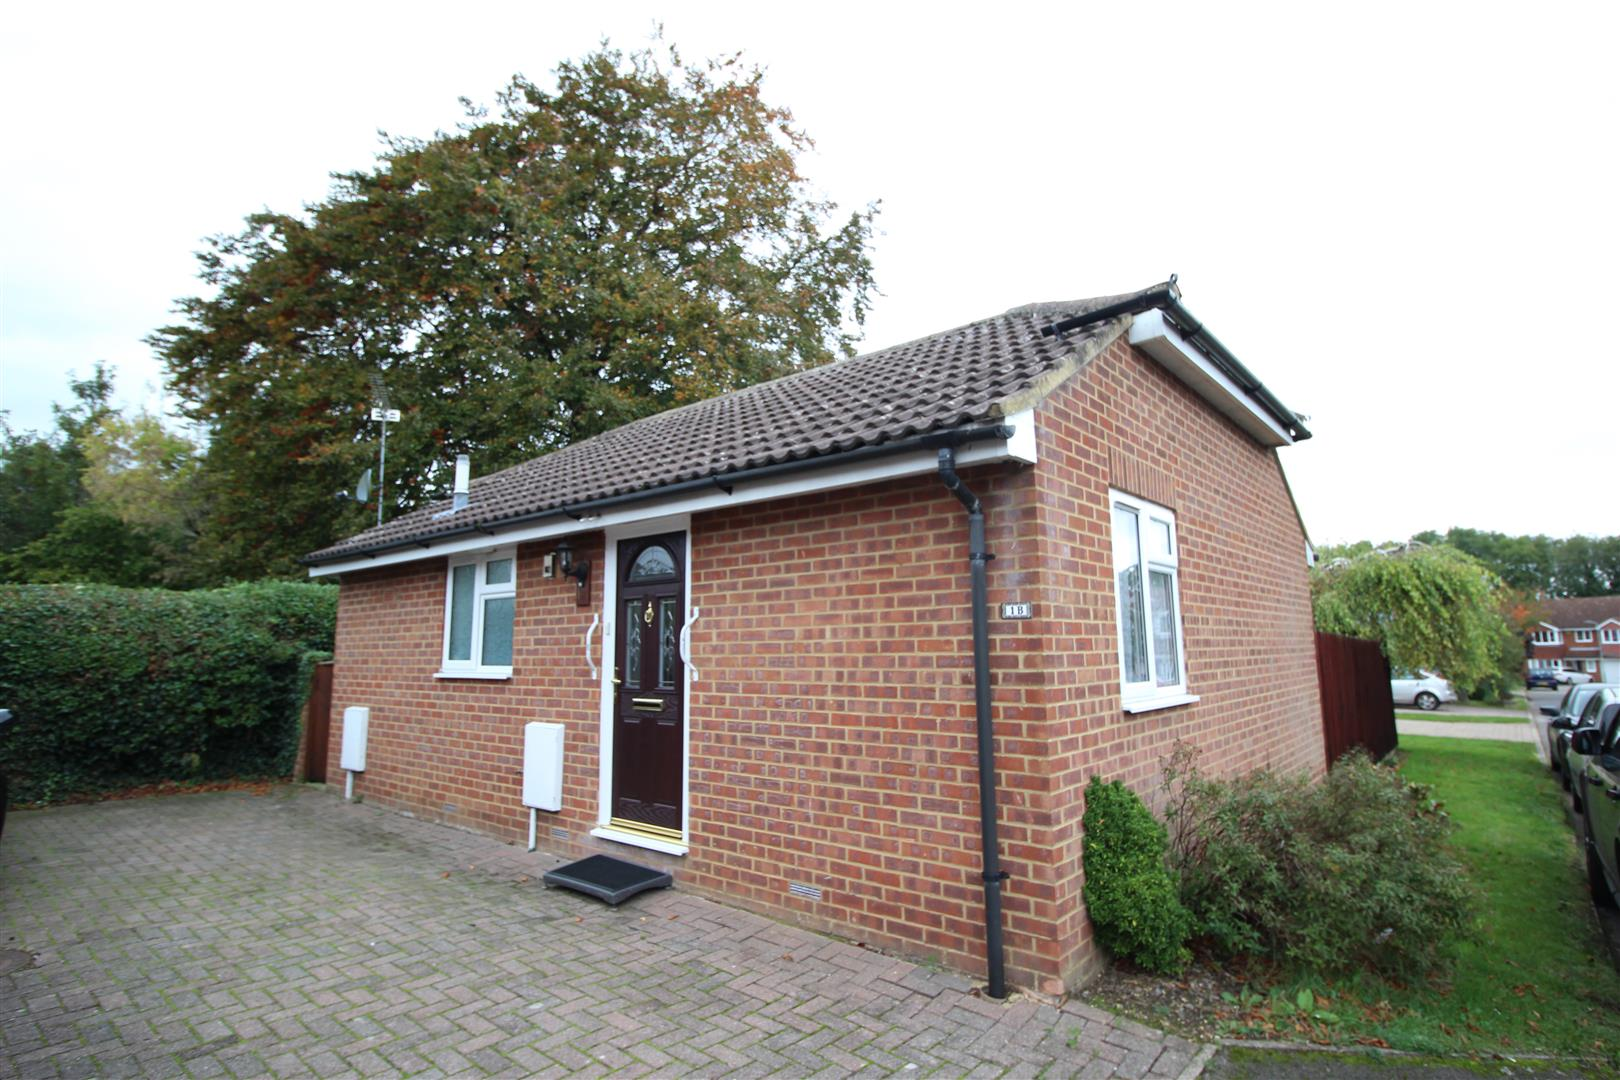 RARELY AVAILABLE detached two bedroom bungalow in Winslow on a popular road close to the high street. The property benefits from gas central heating, conservatory and off road parking.<br/><br/>The property consists of: